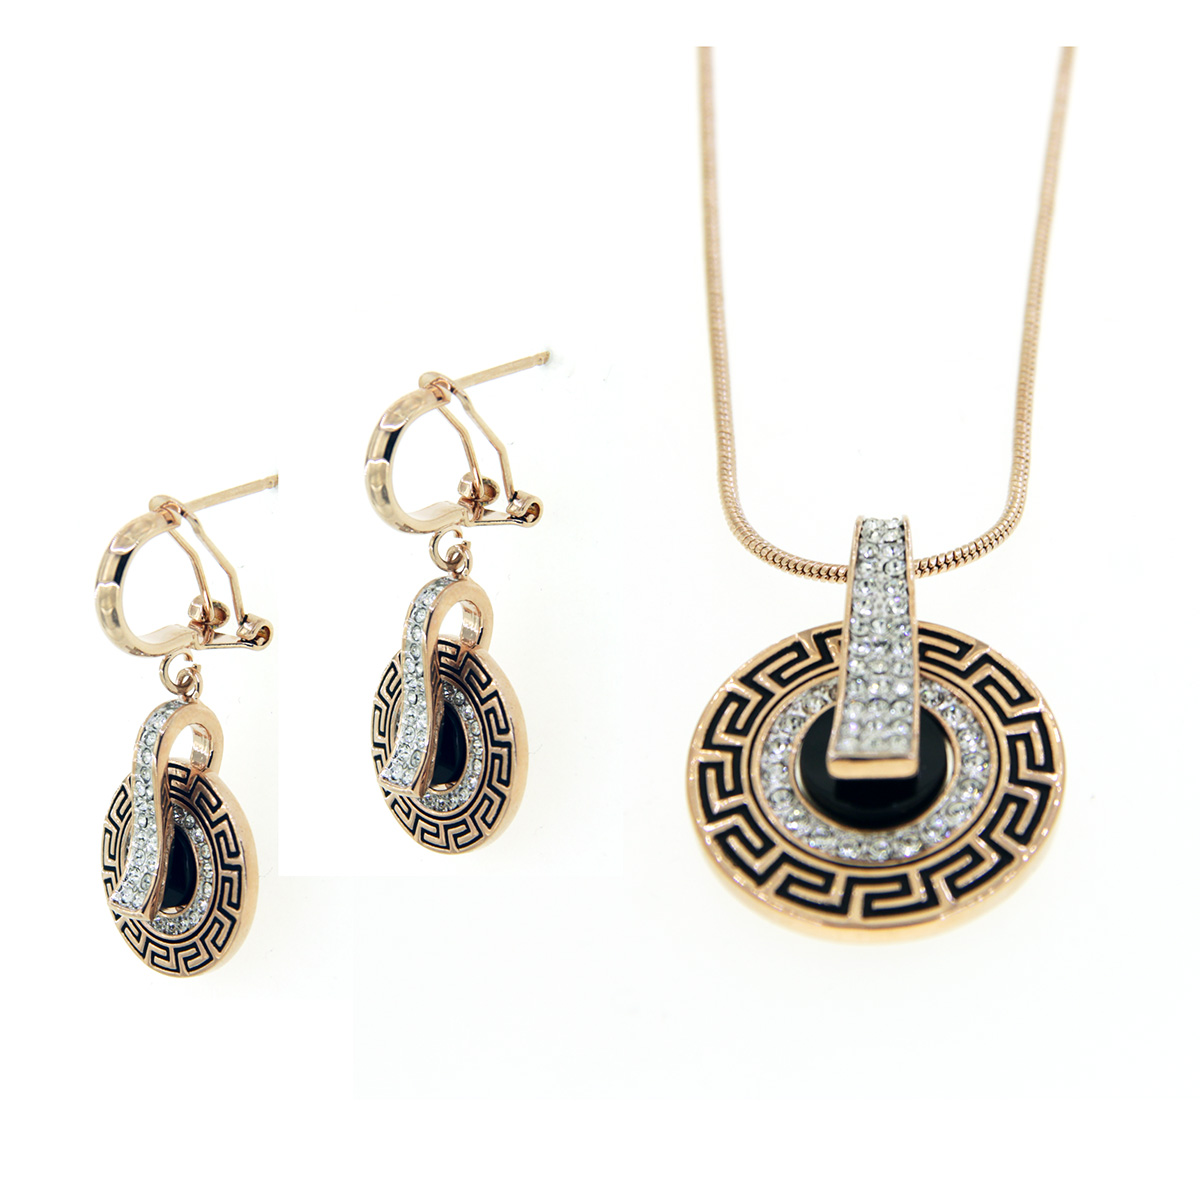 5035A Rose Gold Plated Pendant and Earrings & Chain Set